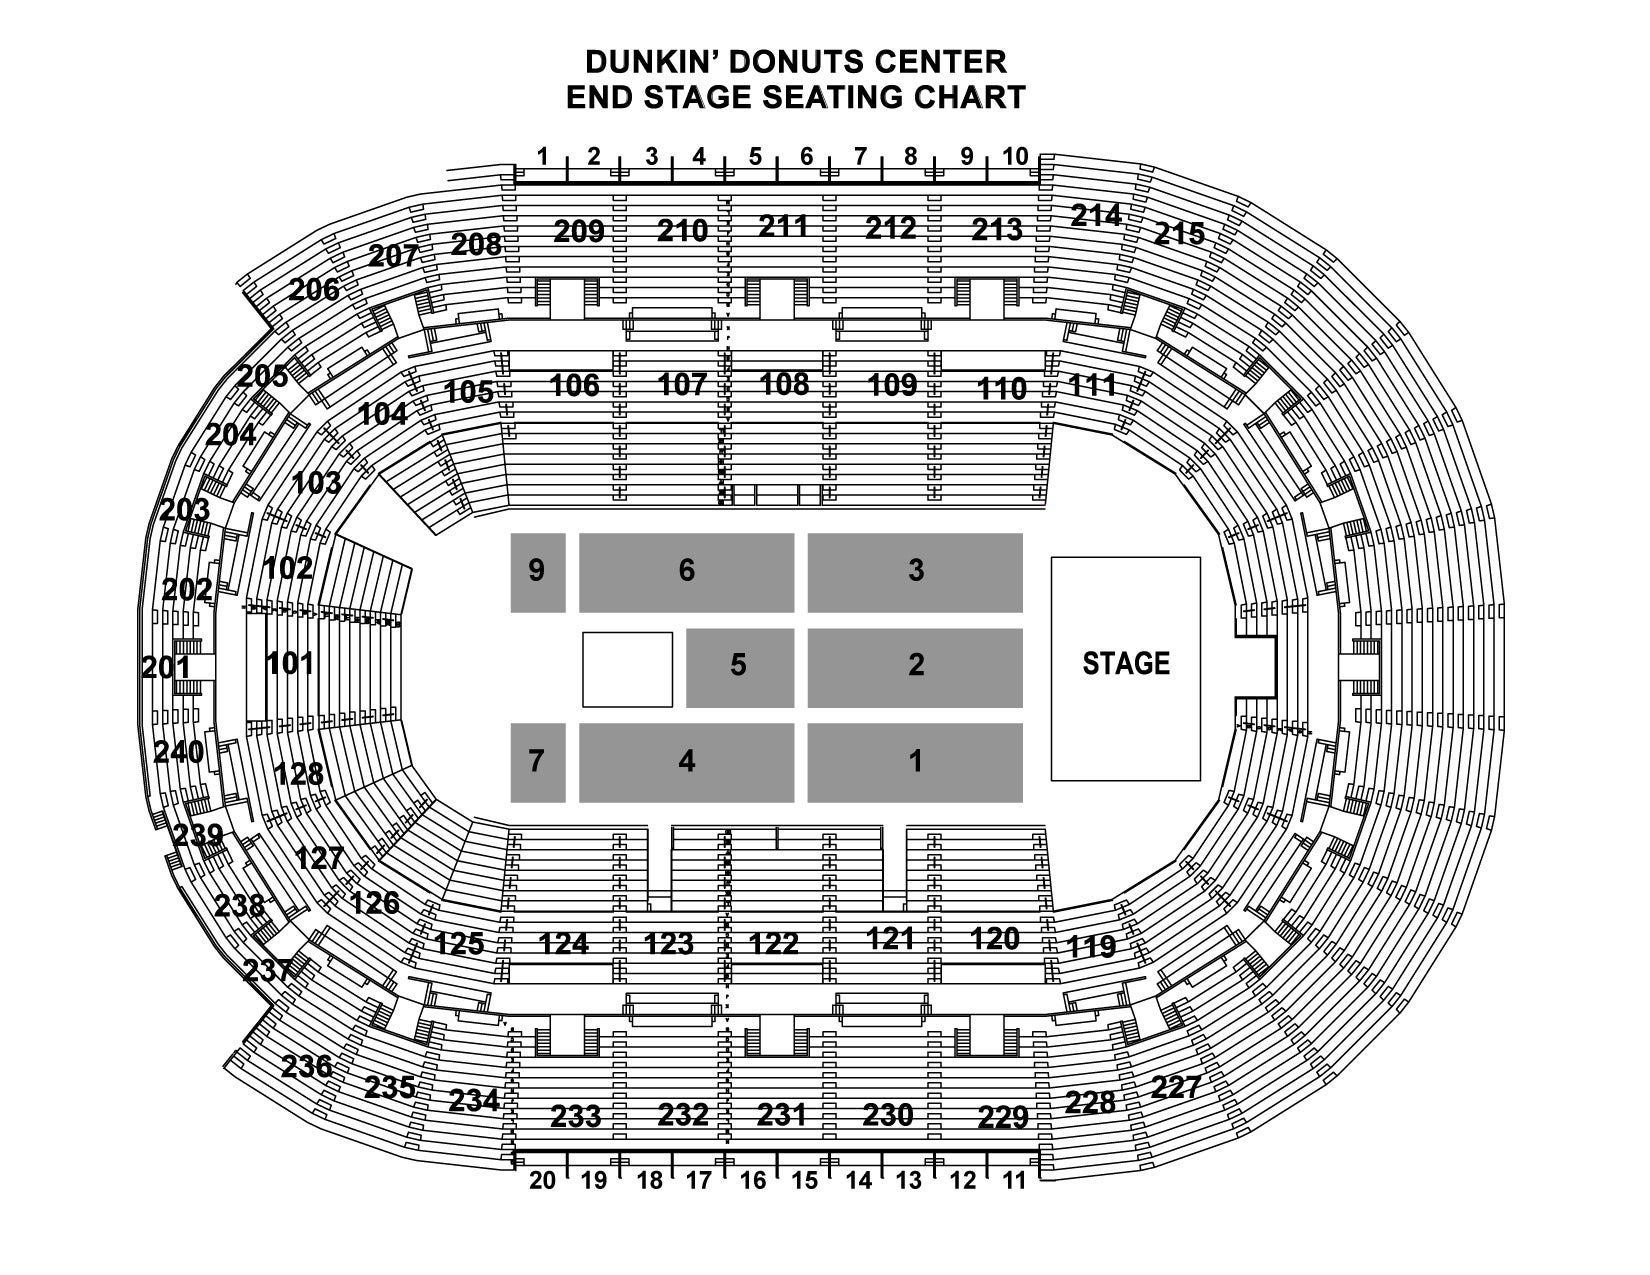 End Stage Seating Chart